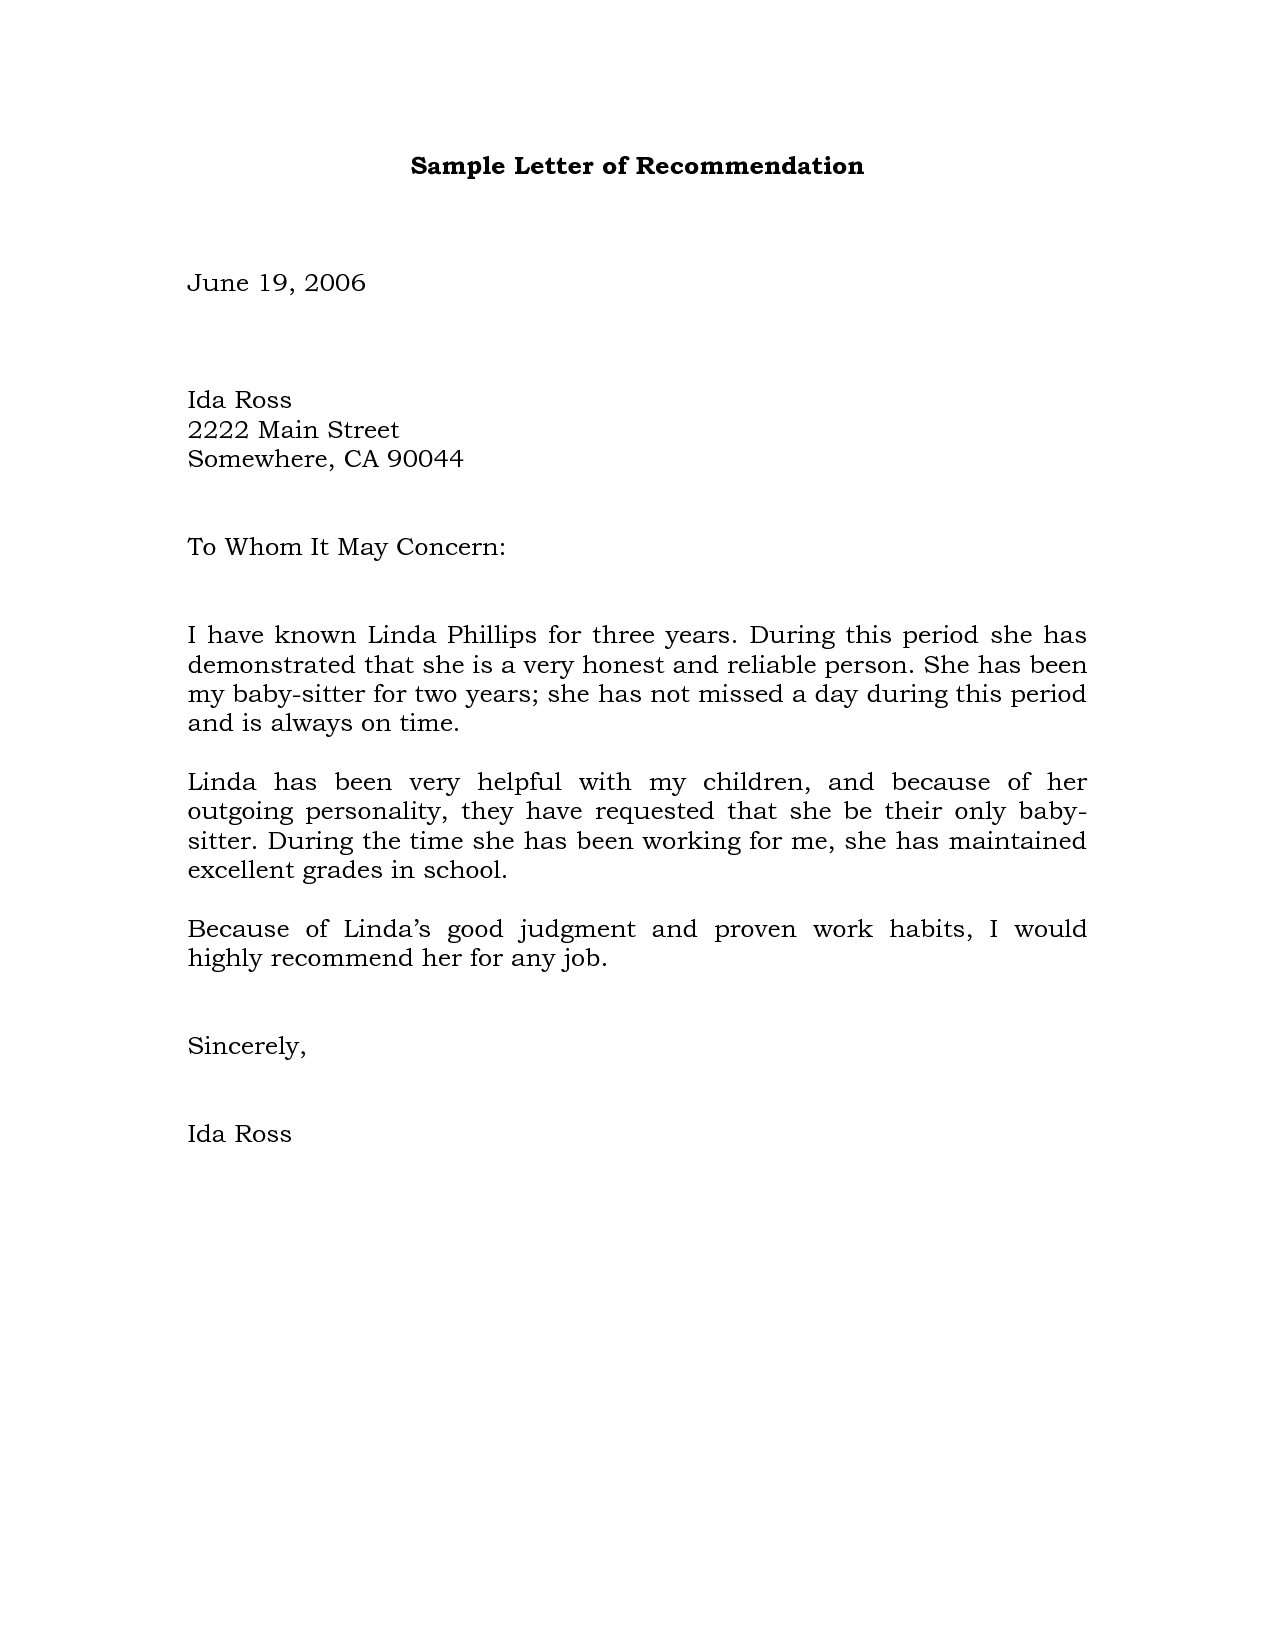 Free Sample Of Employee Reference Letter Cover Letter Templates